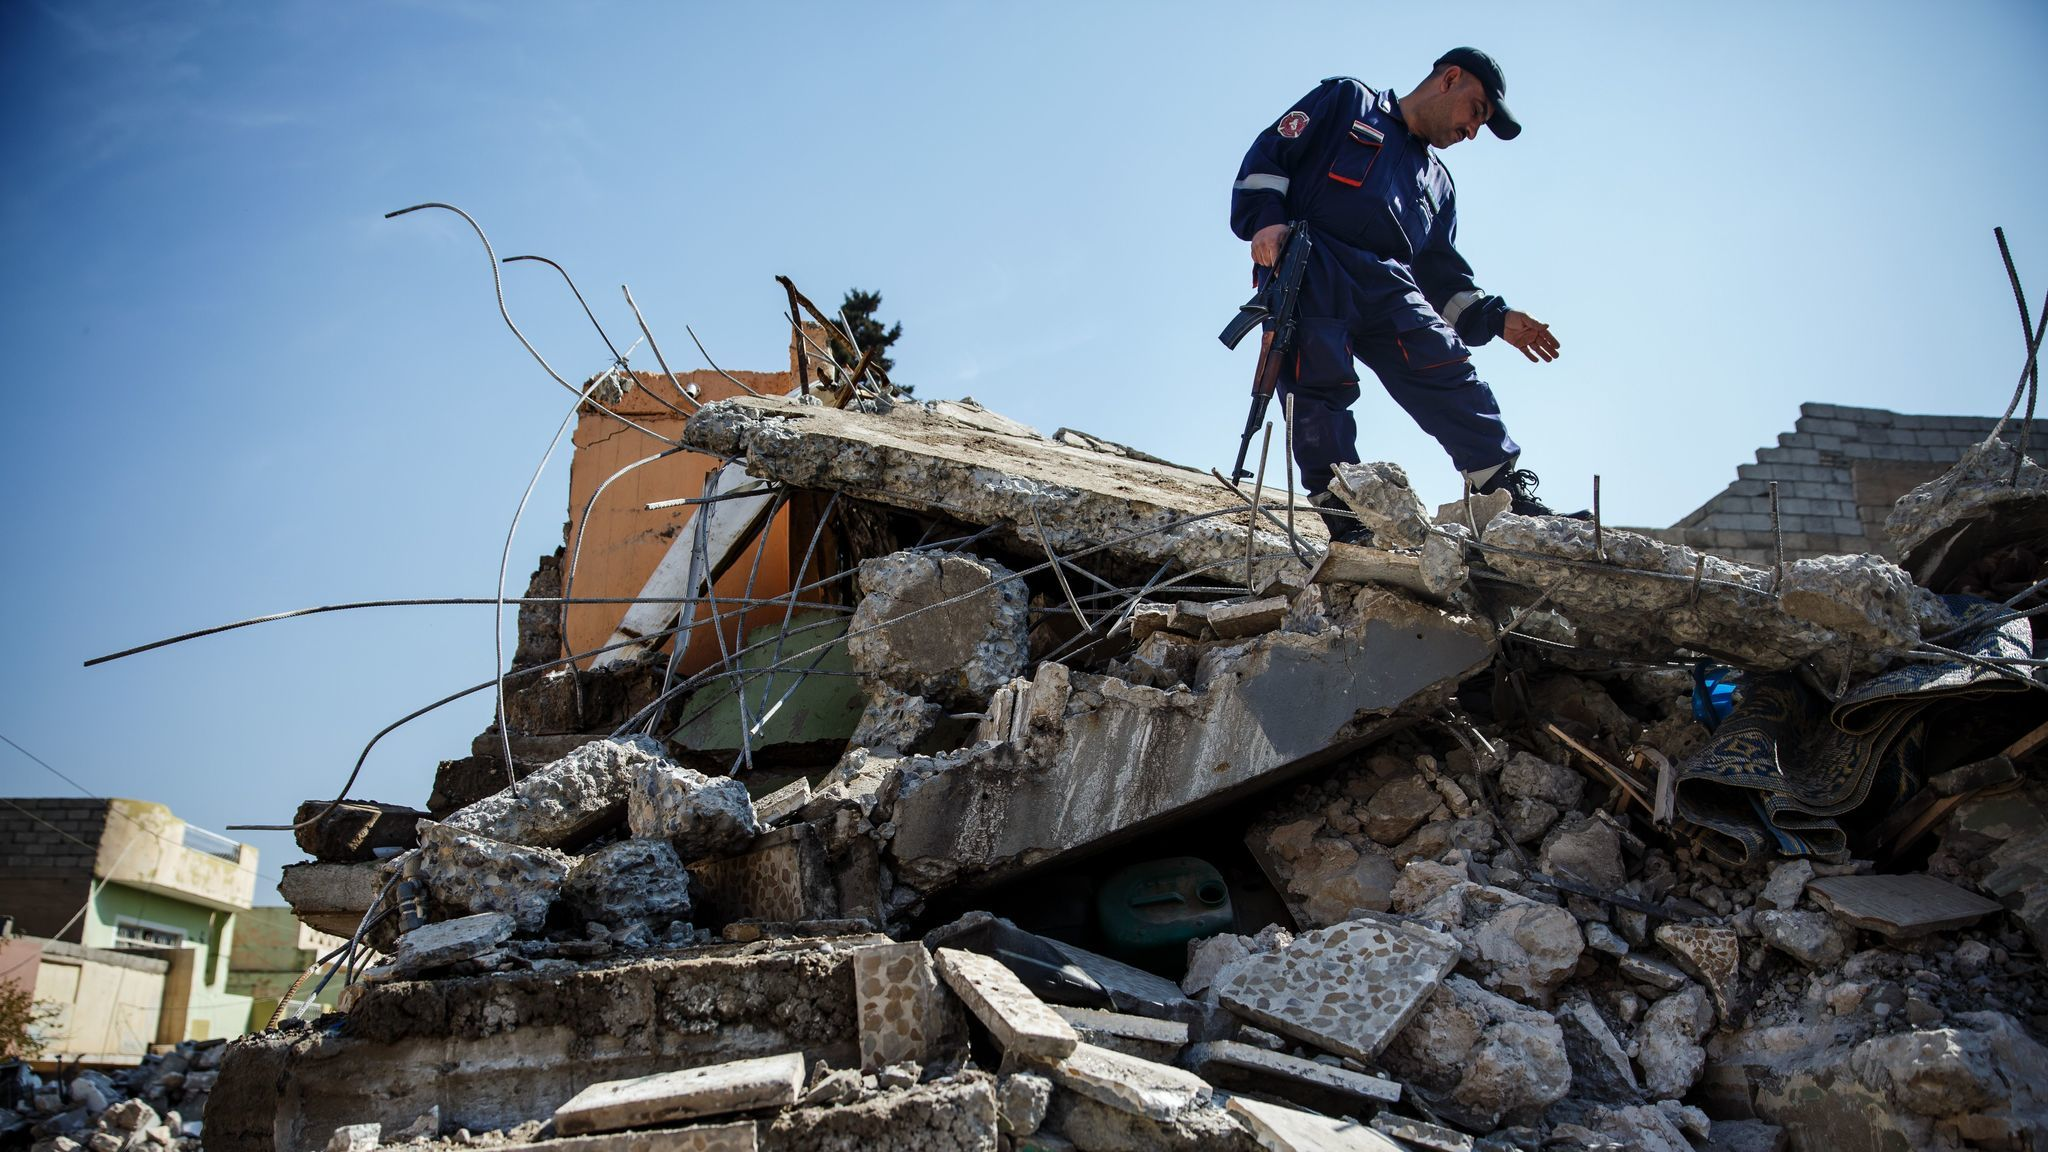 An Iraqi civil defense force member stands guard while work is done to remove the rubble and dead bodies from a home destroyed by a coalition air strike in the  Jadidah neighborhood of Mosul  on March 24, 2017.